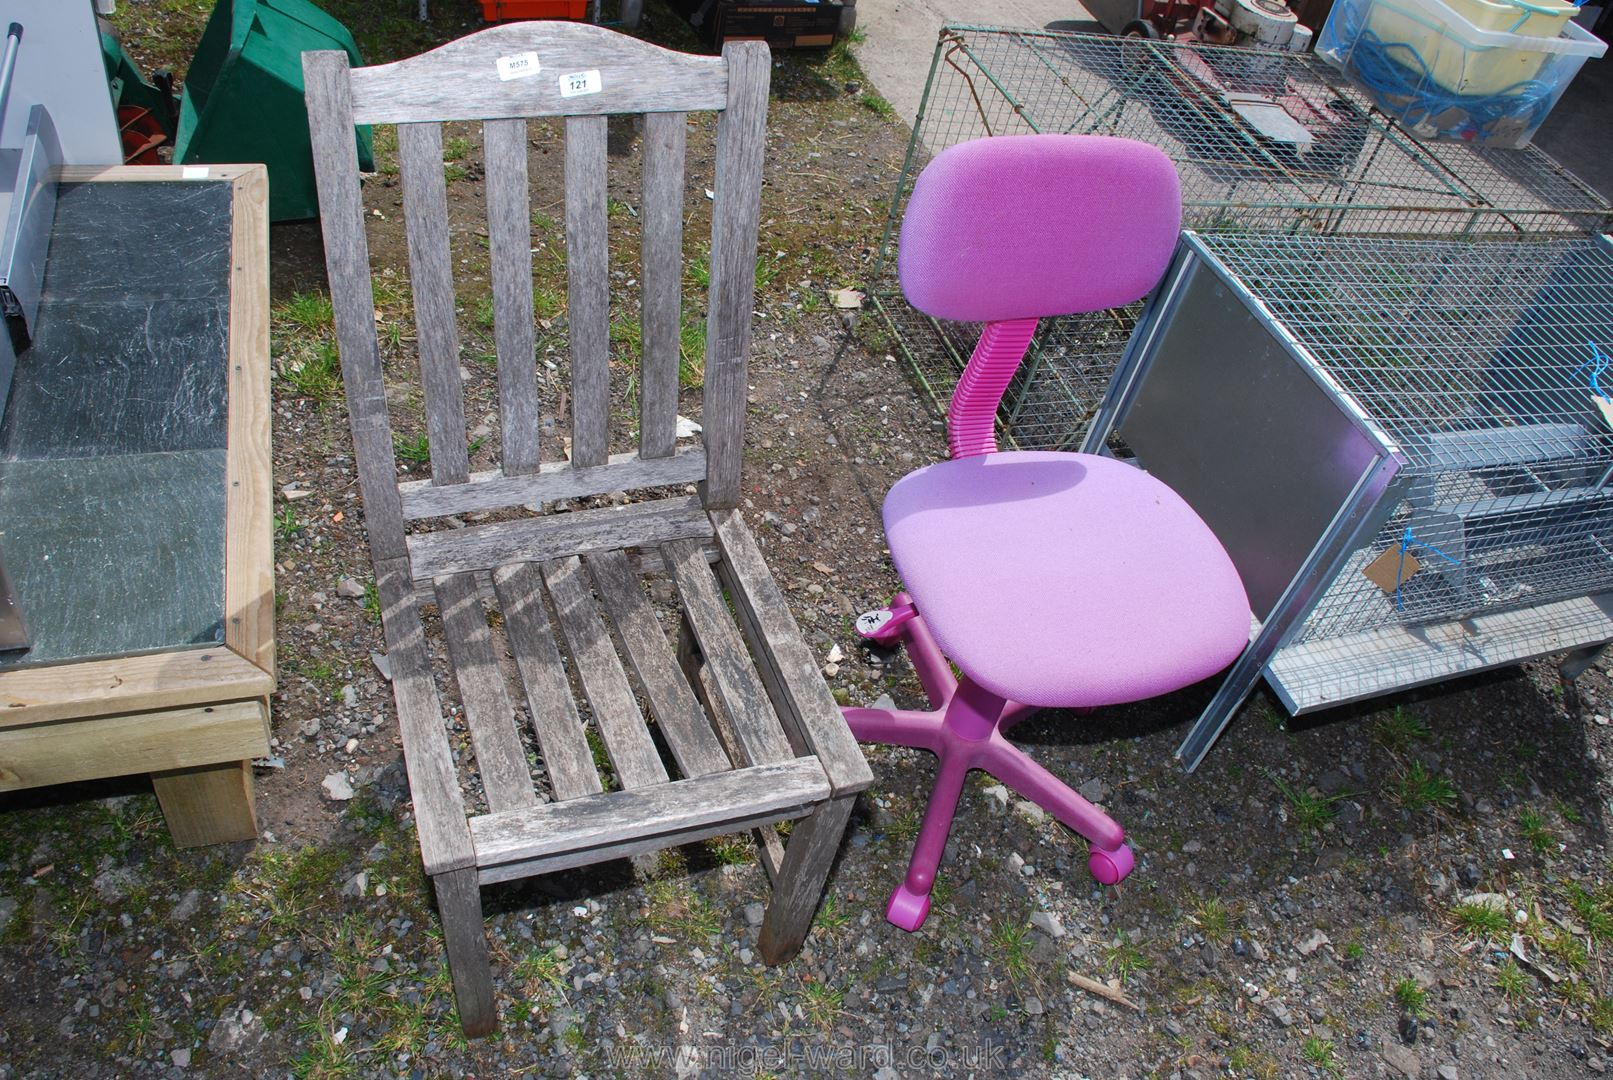 A wooden Patio chair and a child's computer chair.